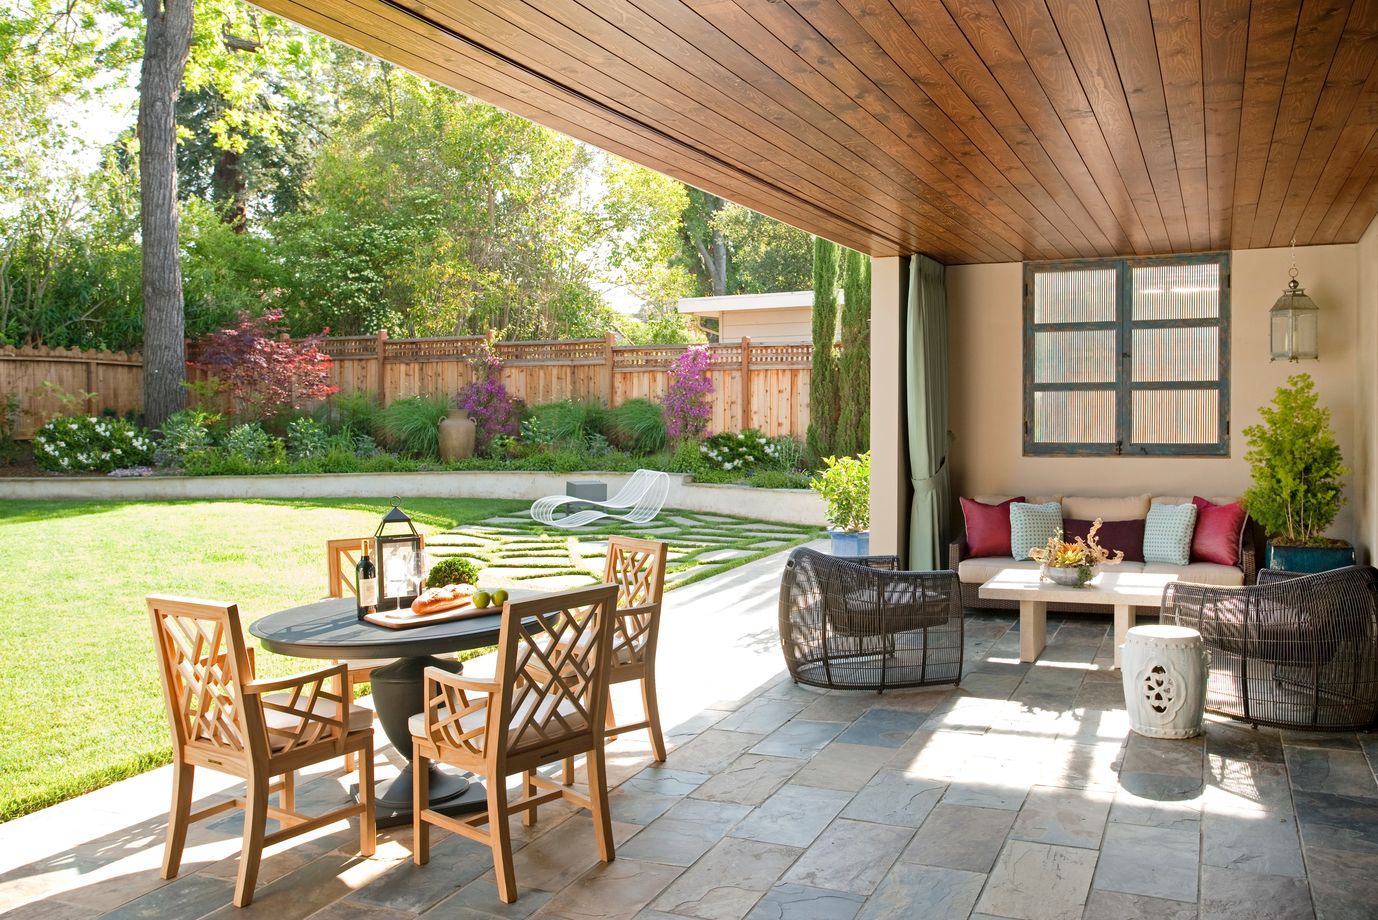 Outdoor living 8 ideas to get the most out of your space for Outdoor patio accessories